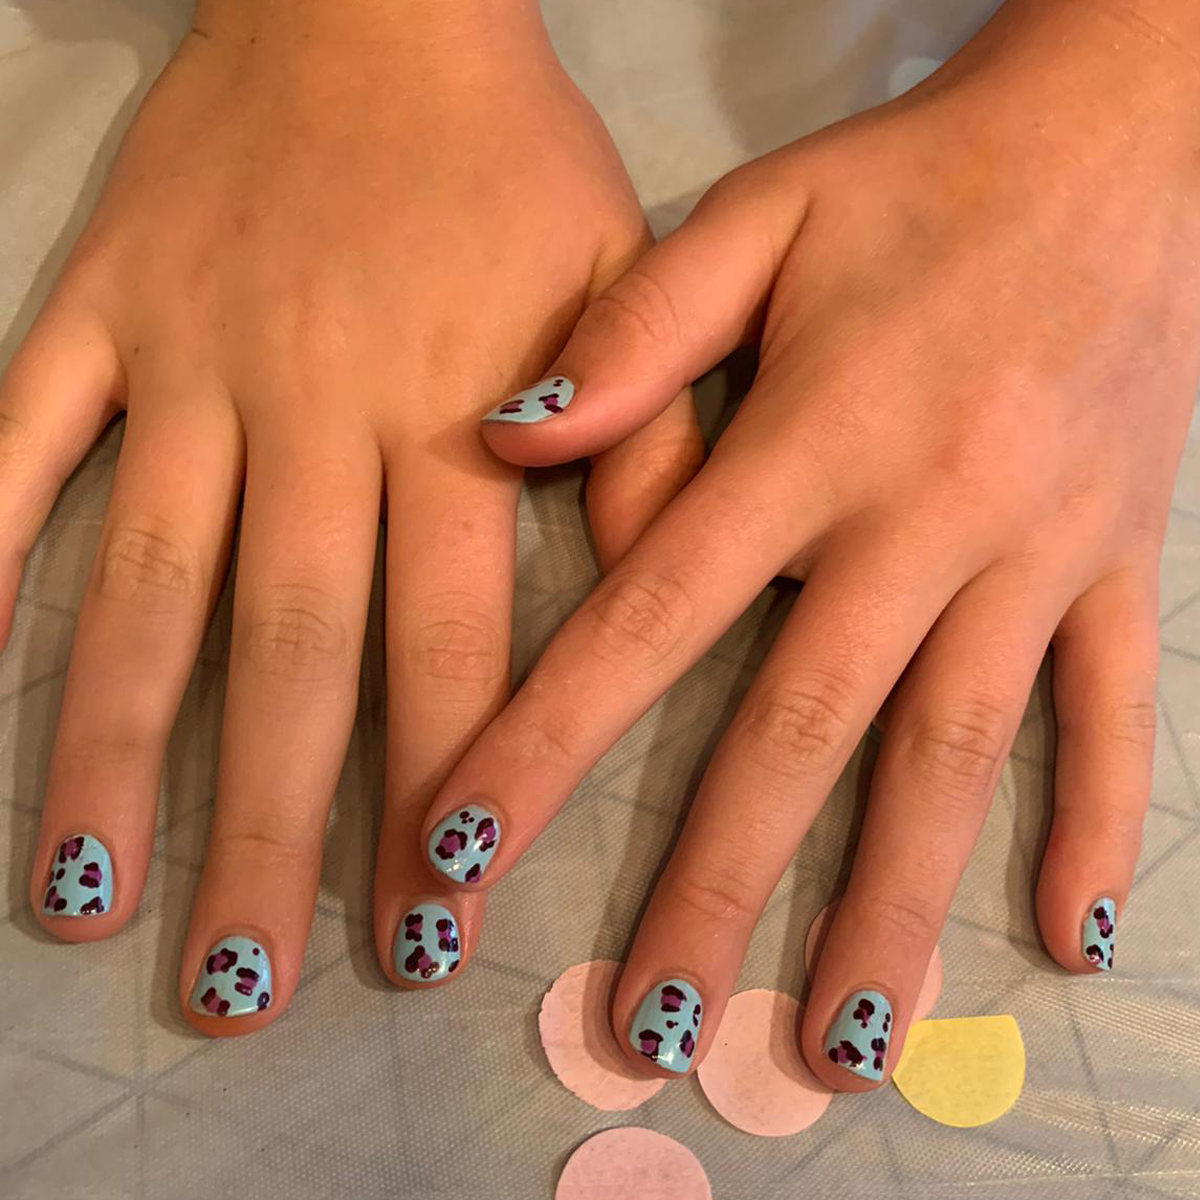 nails by natalie rose mobile manicure london Nail Party Leopard Print